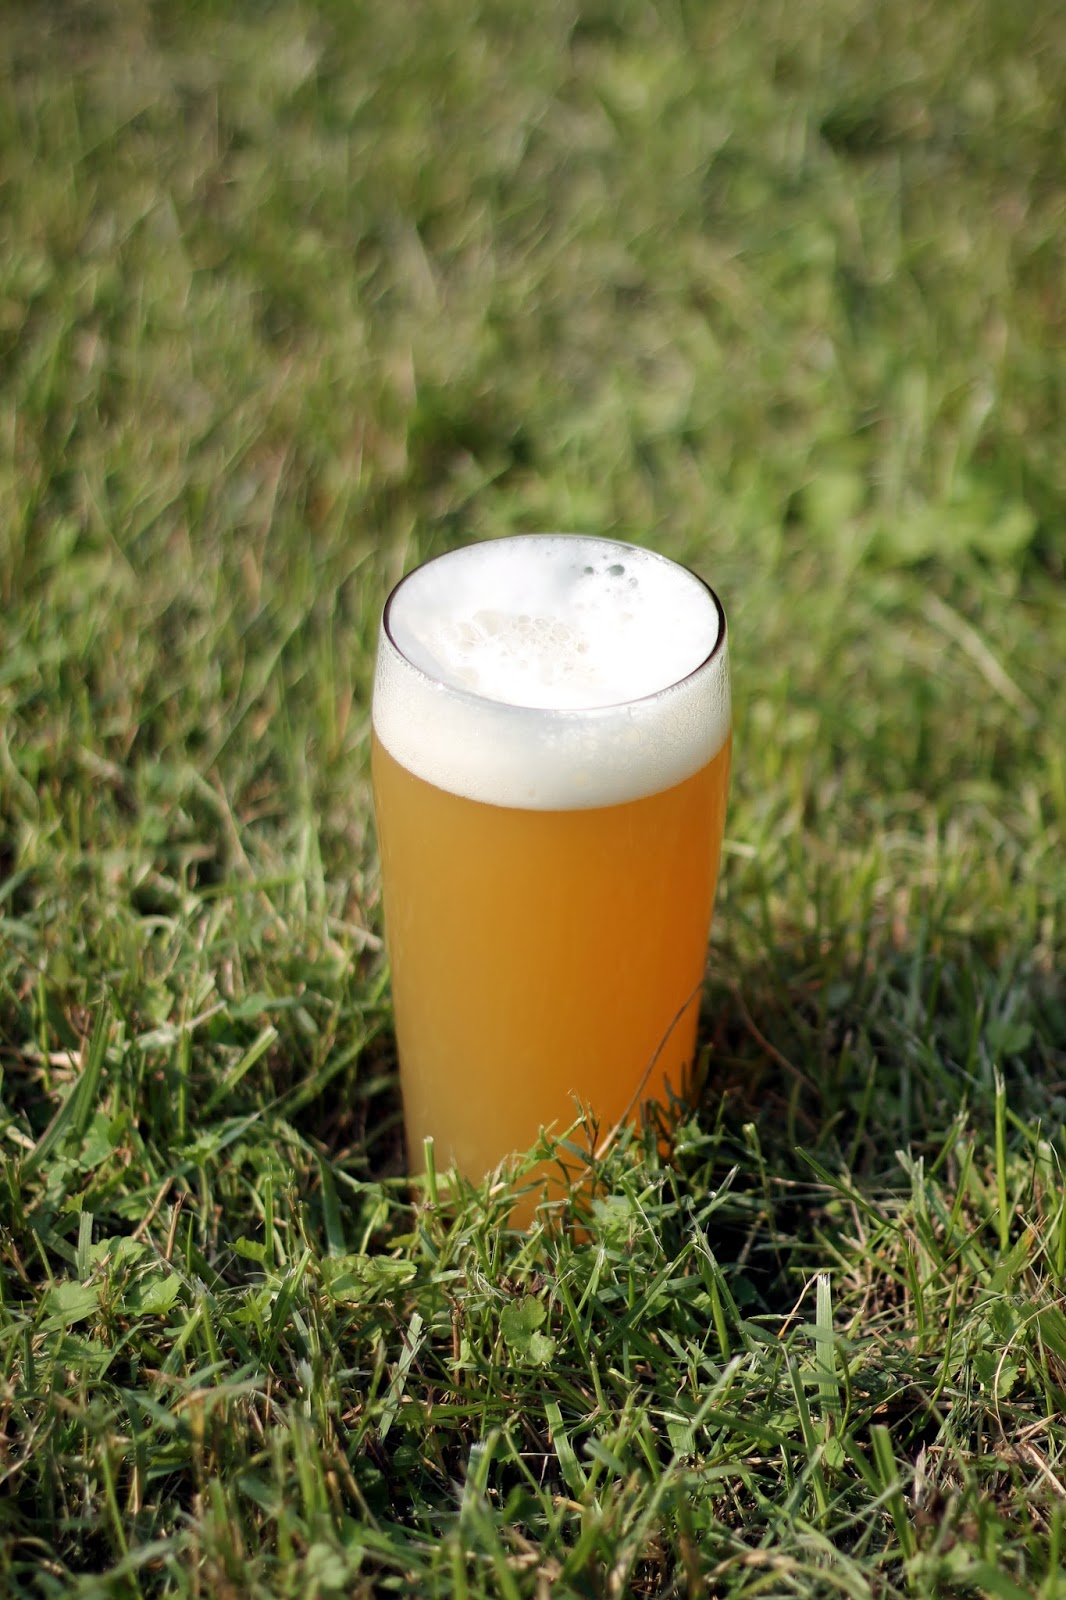 Soft & Juicy IPA, on my freshly cut lawn (as you can tell I take the if it's green it stays approach to grass management)